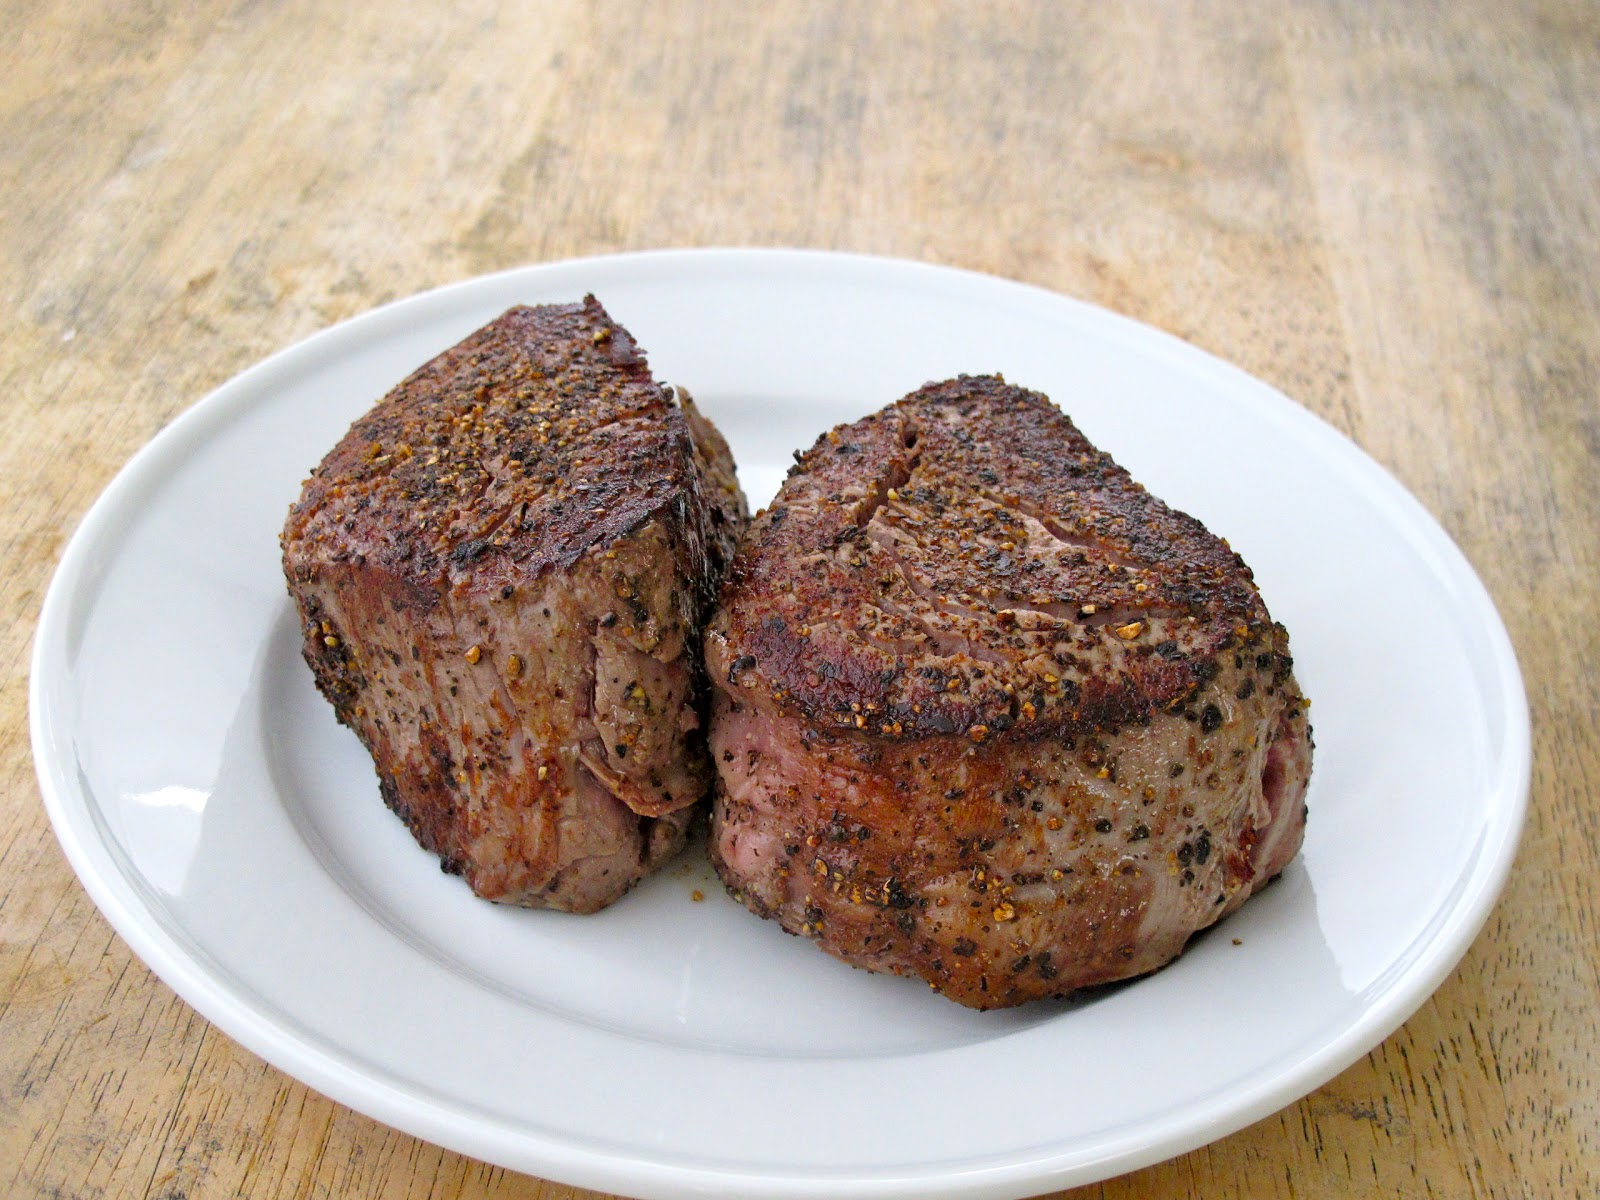 ... Steffens Hobick: Filet Mignon | Filet of Beef | Seared Filets at Home